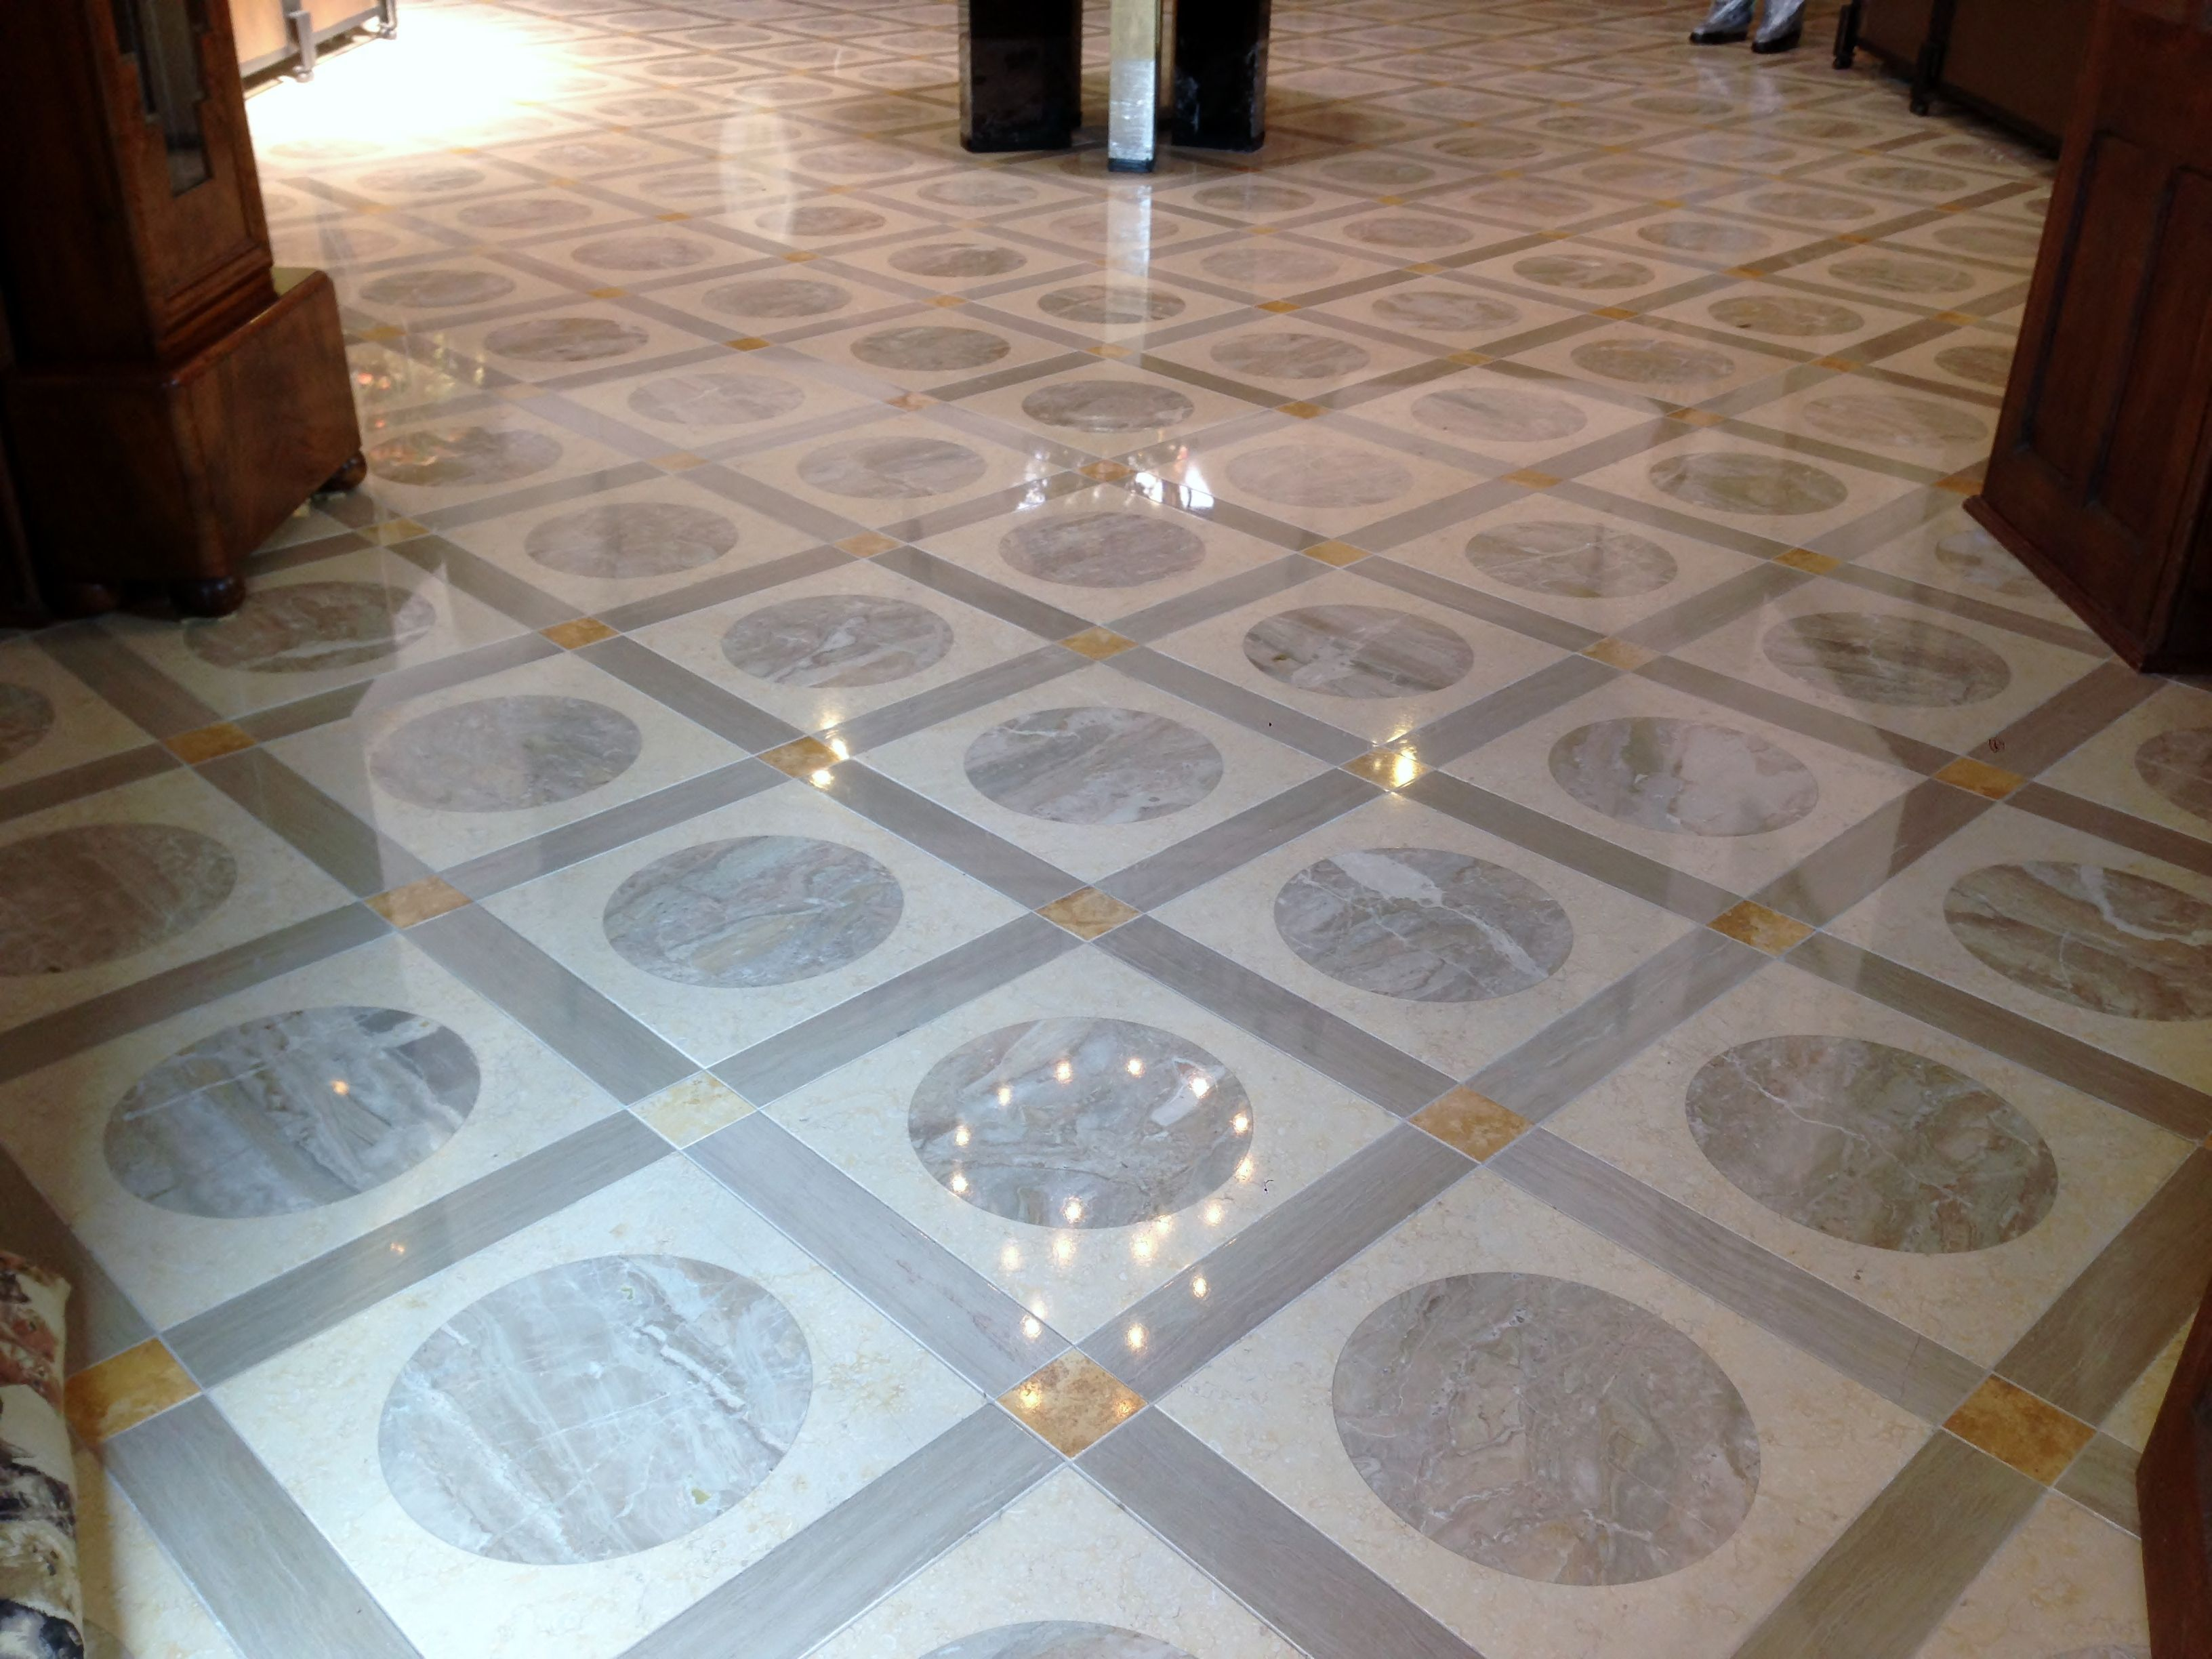 Stone Floor Cleaning Baileys Cleaning Services Ltd Provides The